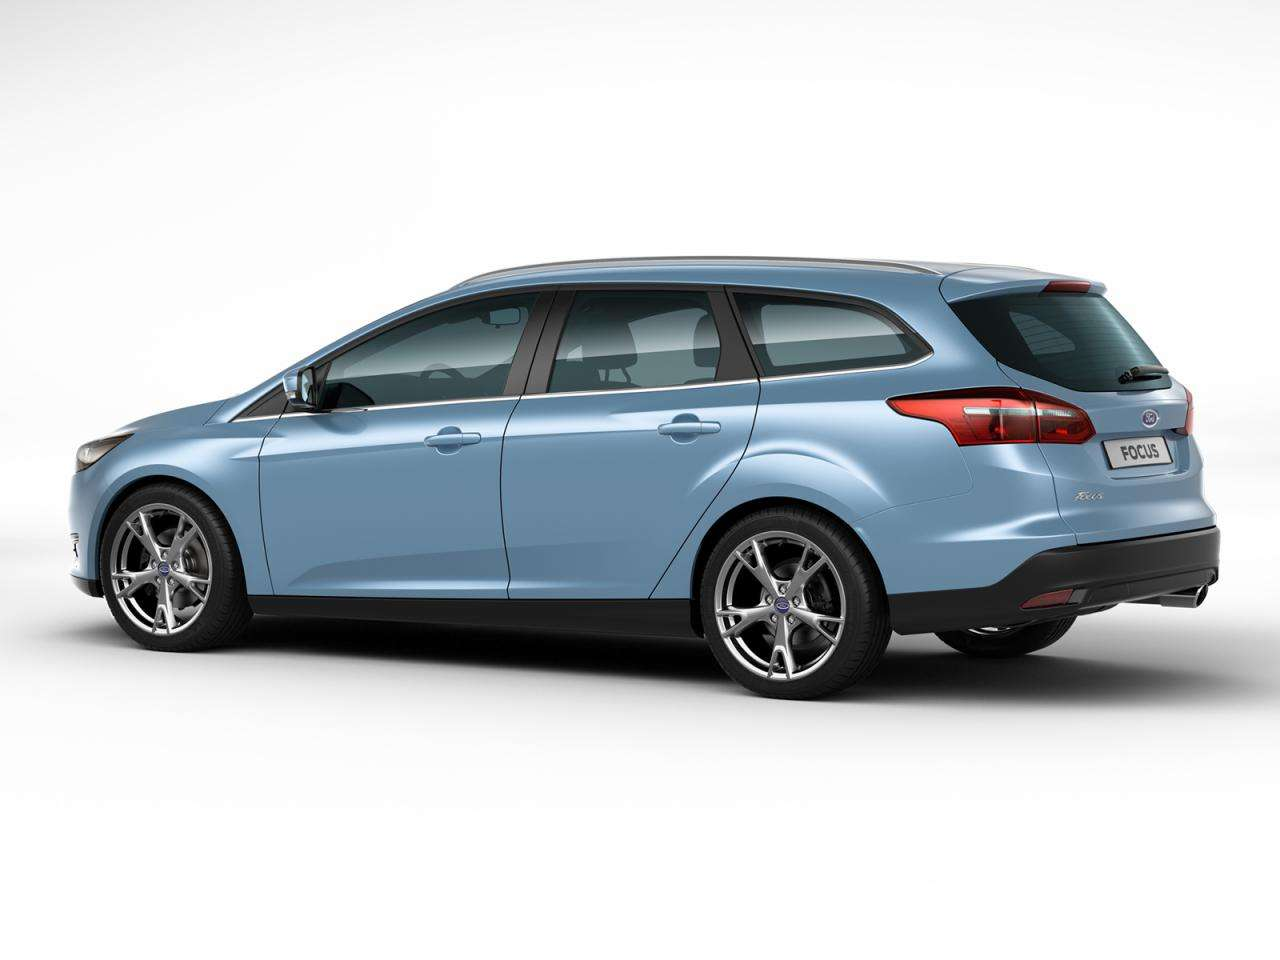 Ford Focus Facelift 2014